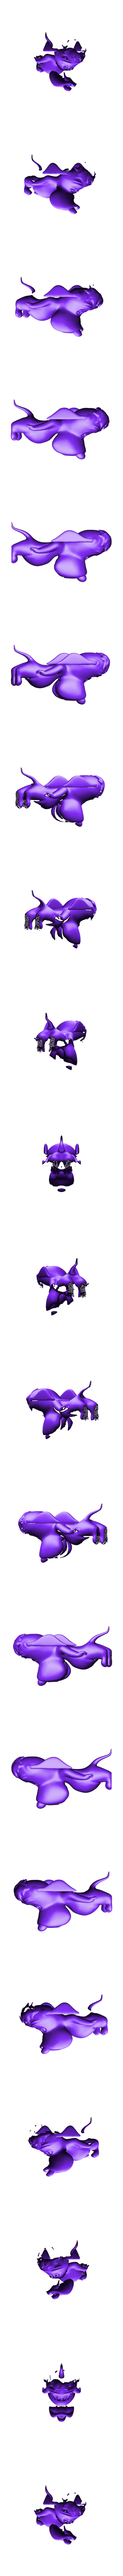 Droopy_without_Supports.stl Download free STL file Droopy • 3D printing object, derailed